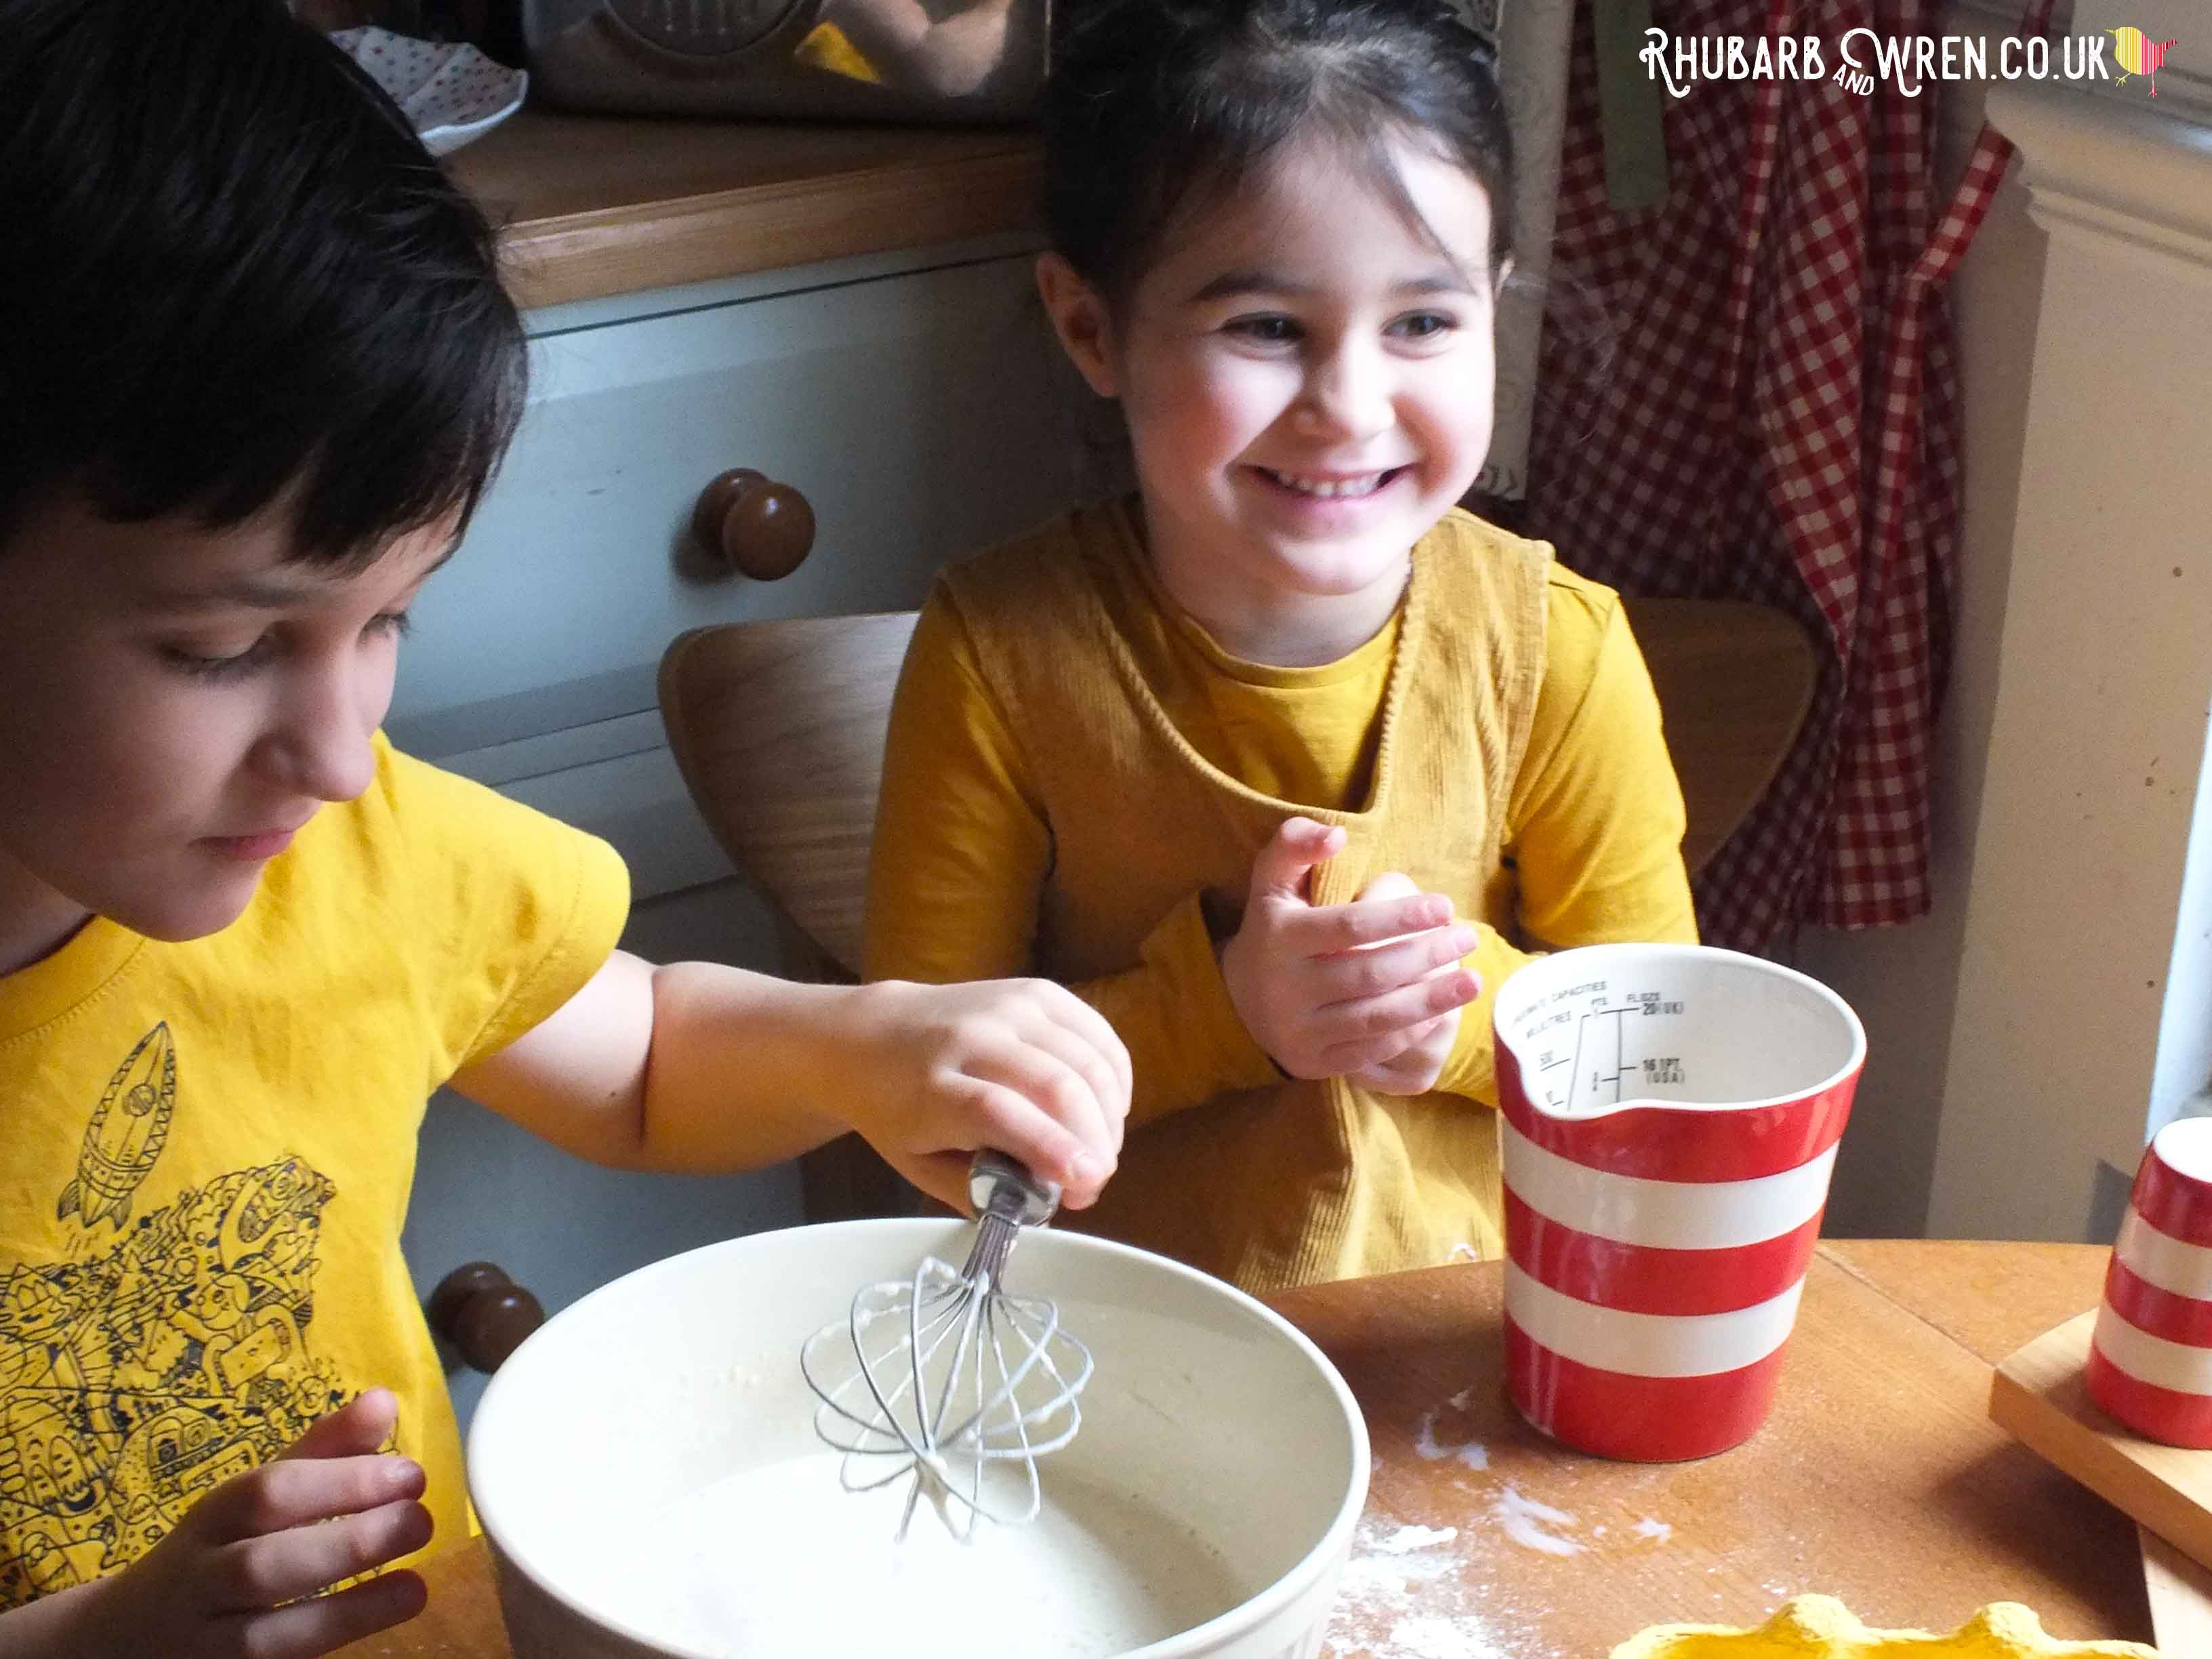 Children smiling as they finish mixing up pancake batter.